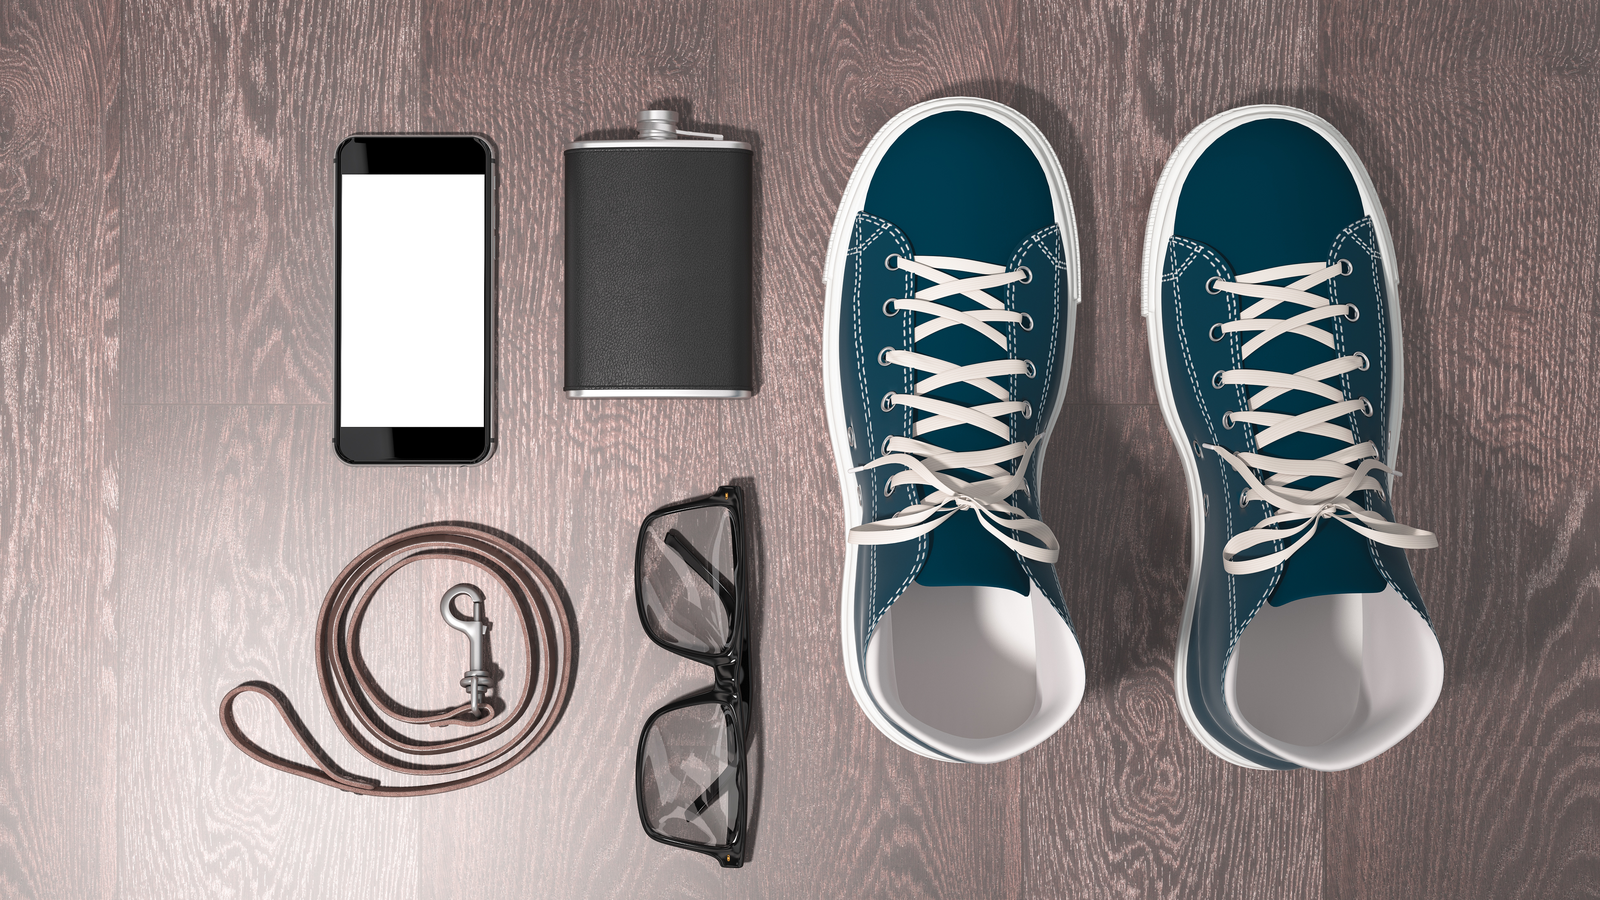 Every day carry man items collection: glasses, leash, sneakers. High resolution.